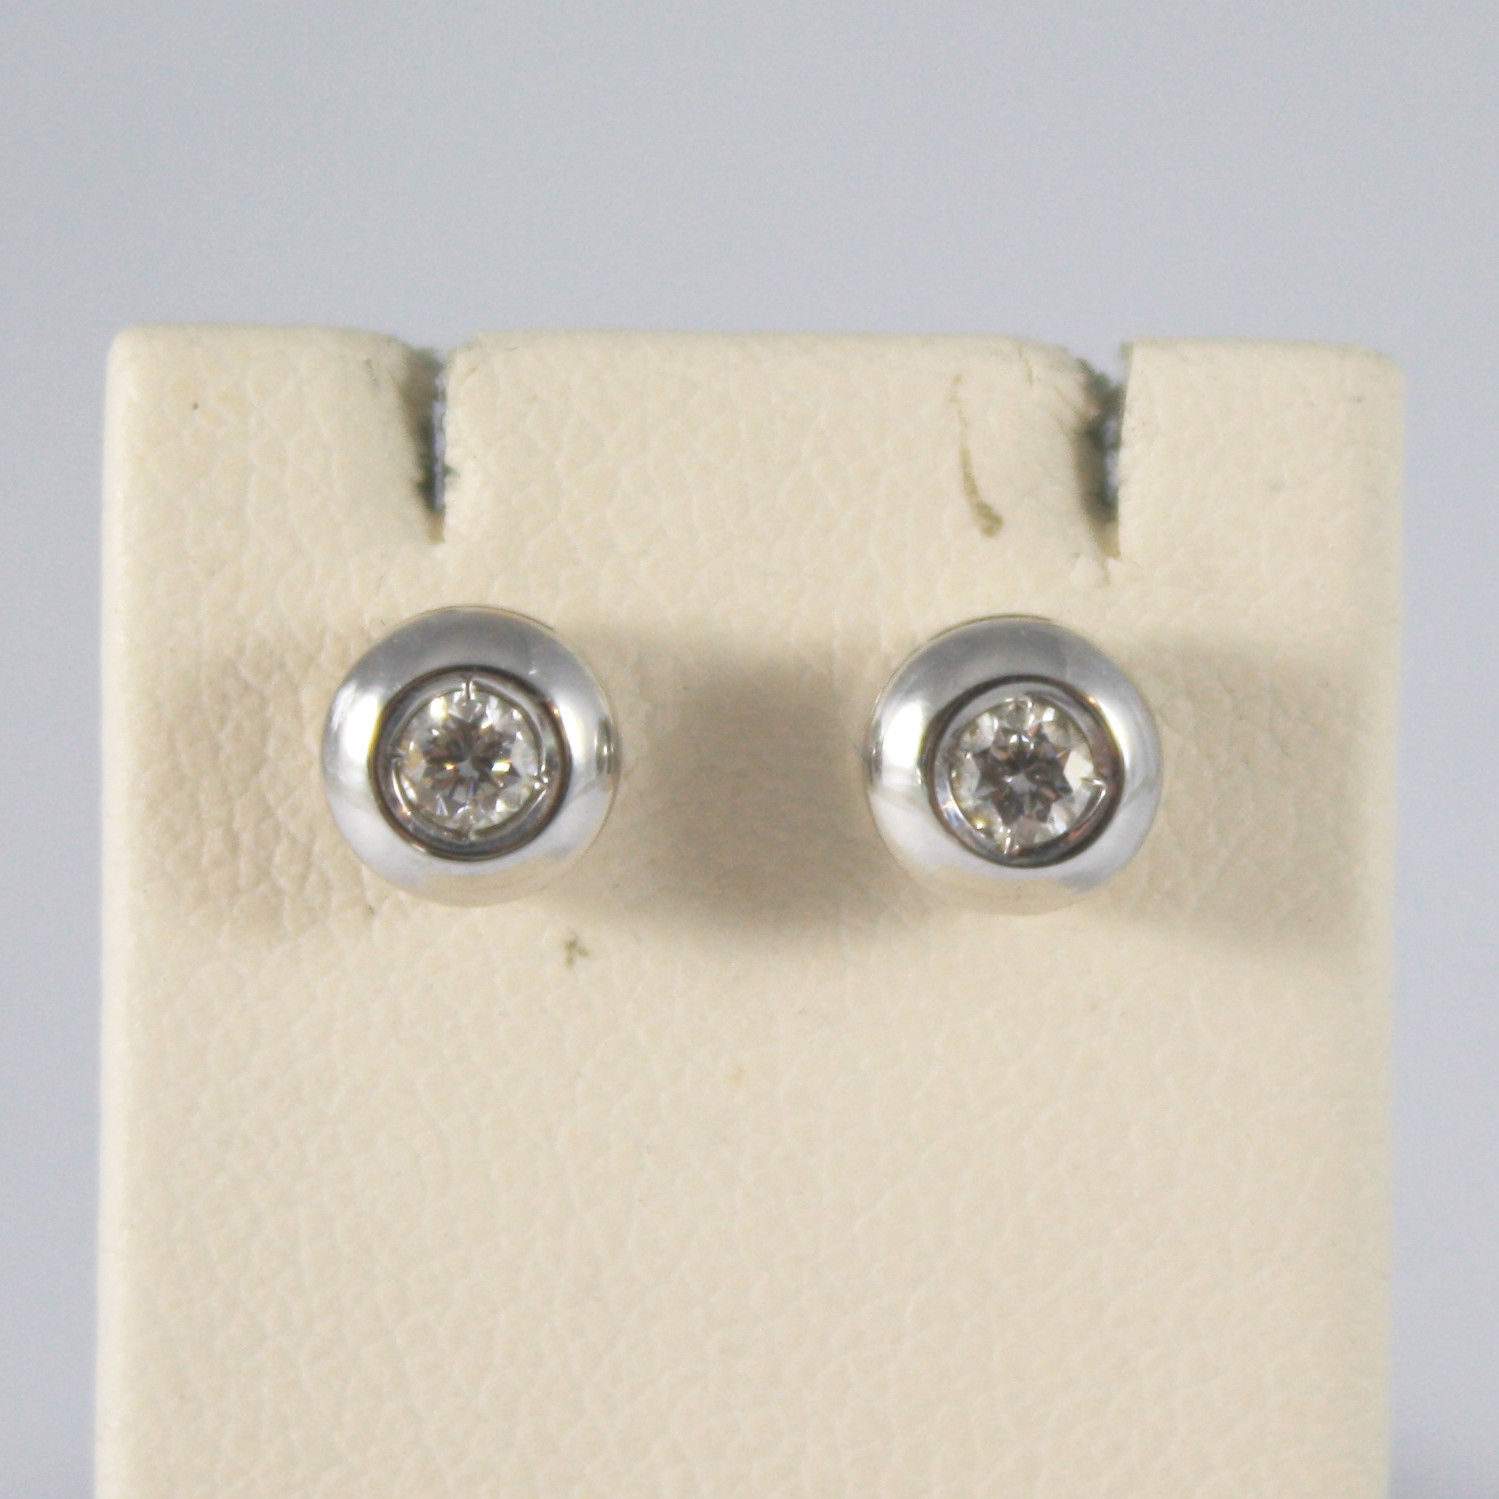 SOLID 18K WHITE GOLD EARRINGS, WITH DIAMONDS CT 0.13, MADE IN ITALY.